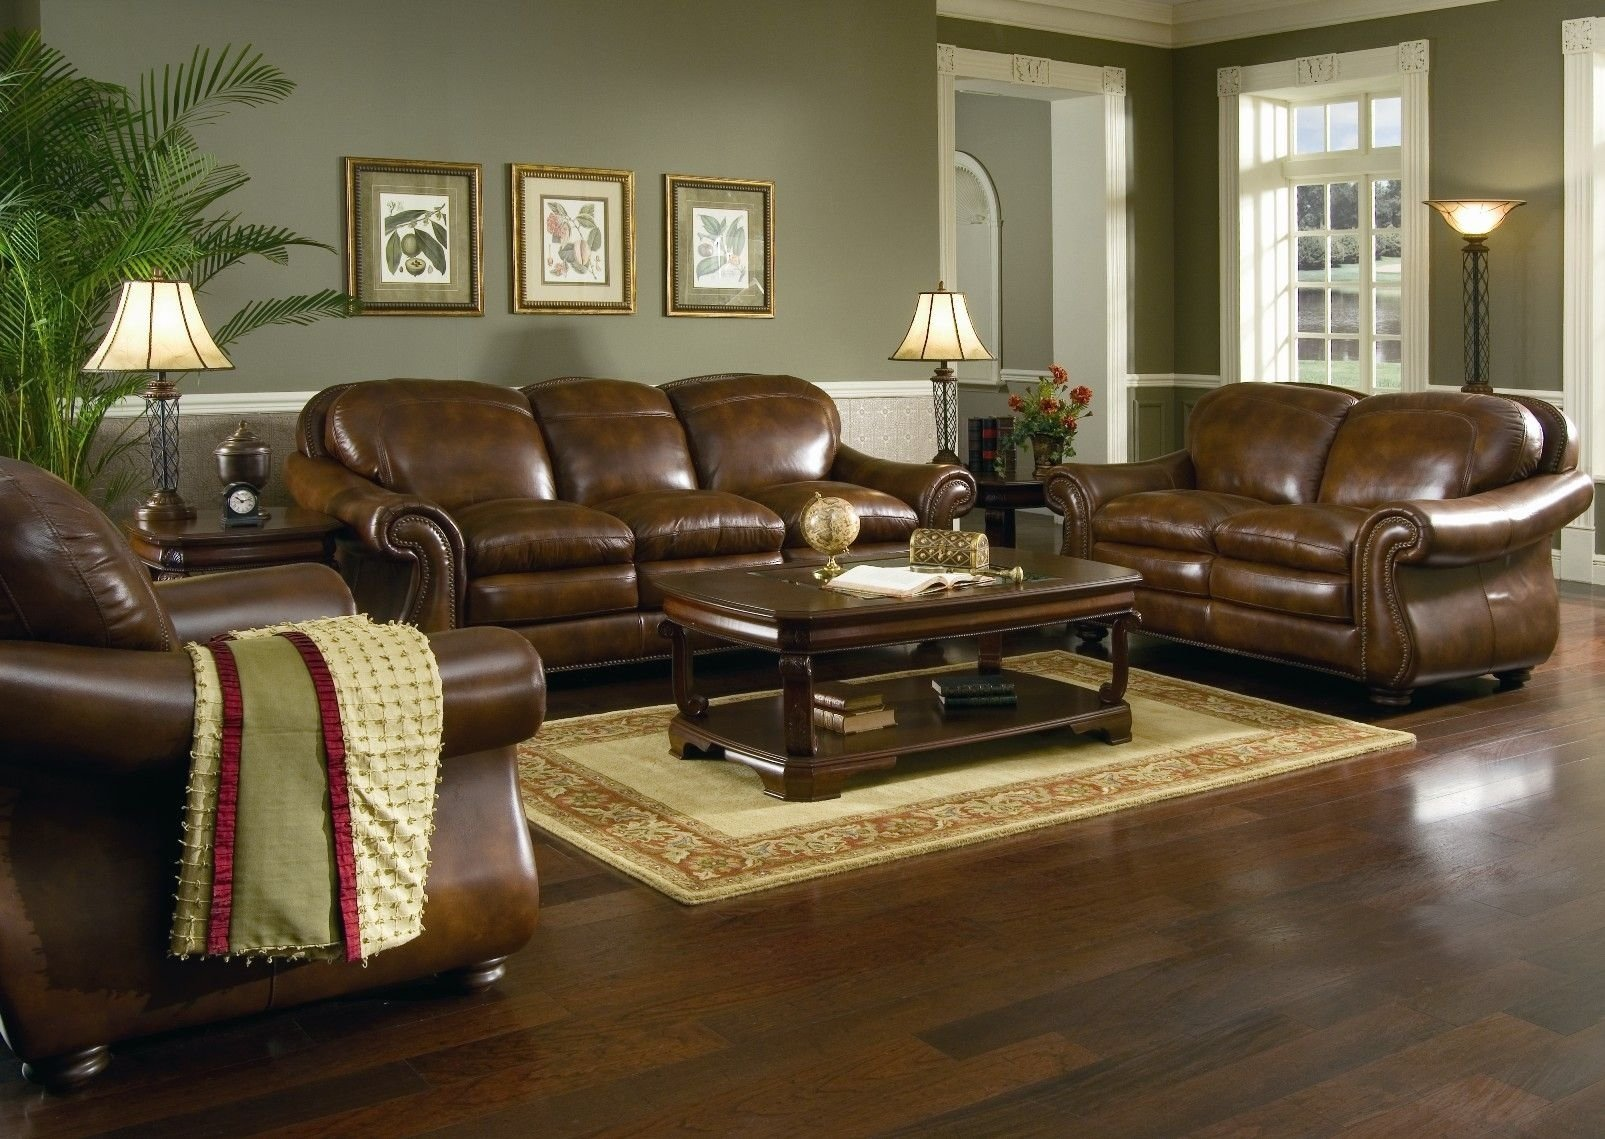 10 Stylish Brown Leather Sofa Decorating Ideas brown leather sofa set for living room with dark hardwood floors 4 2020